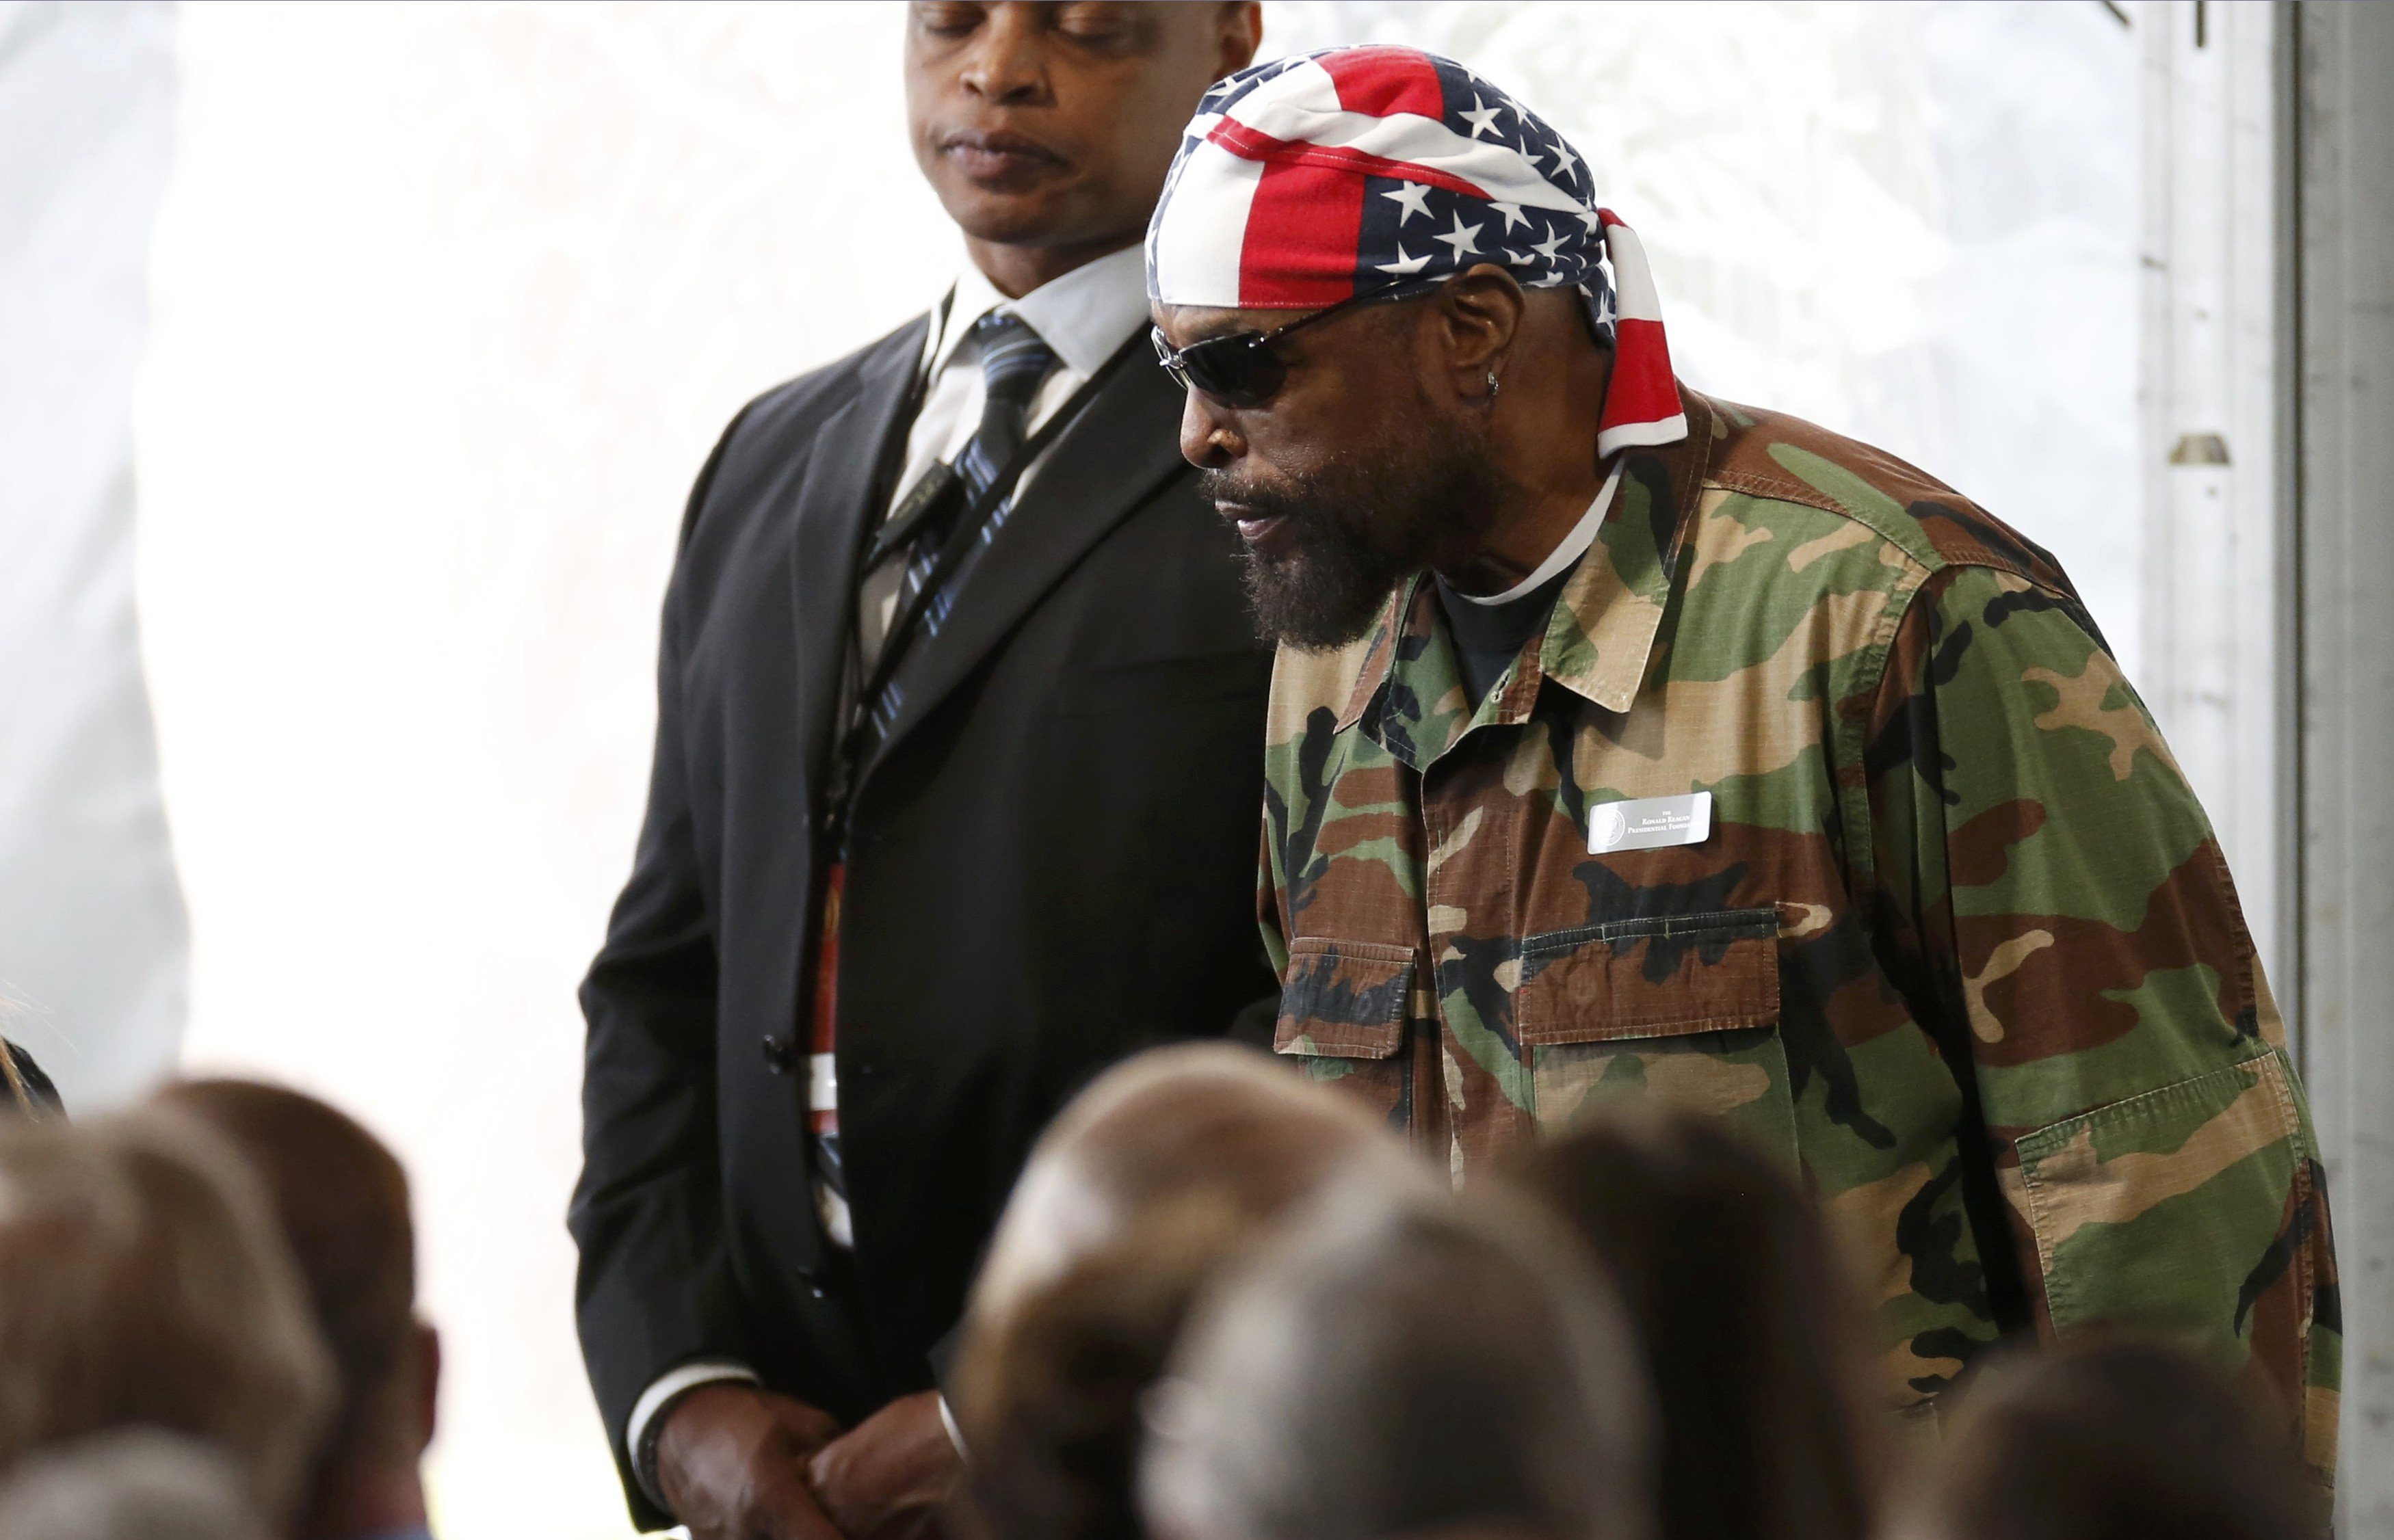 Actor Mr. T arrives for the funeral, March 11, 2016.